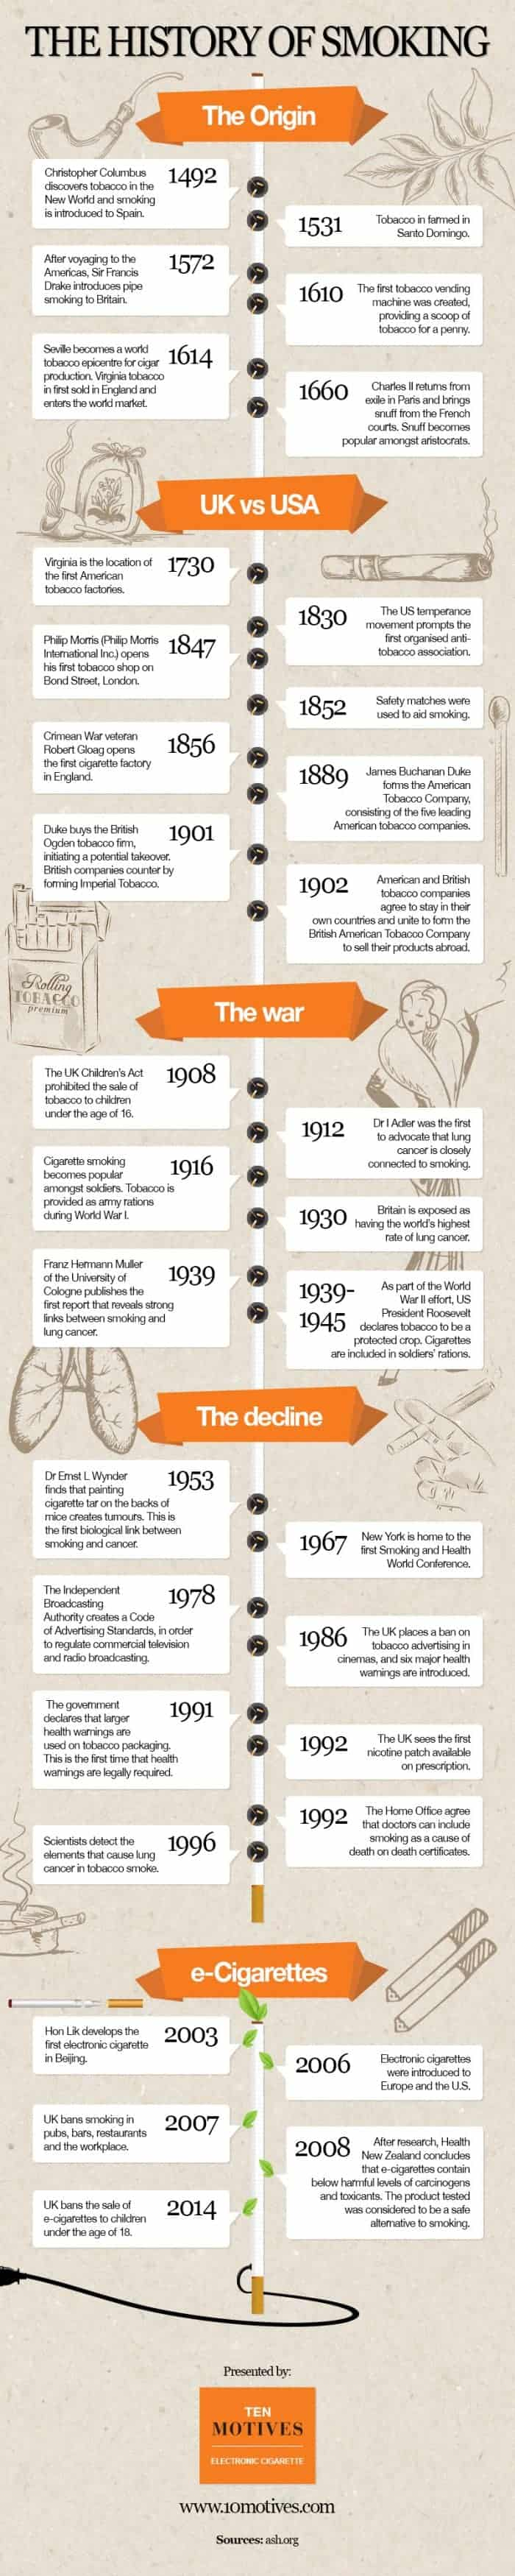 History Of Smoking Infographic